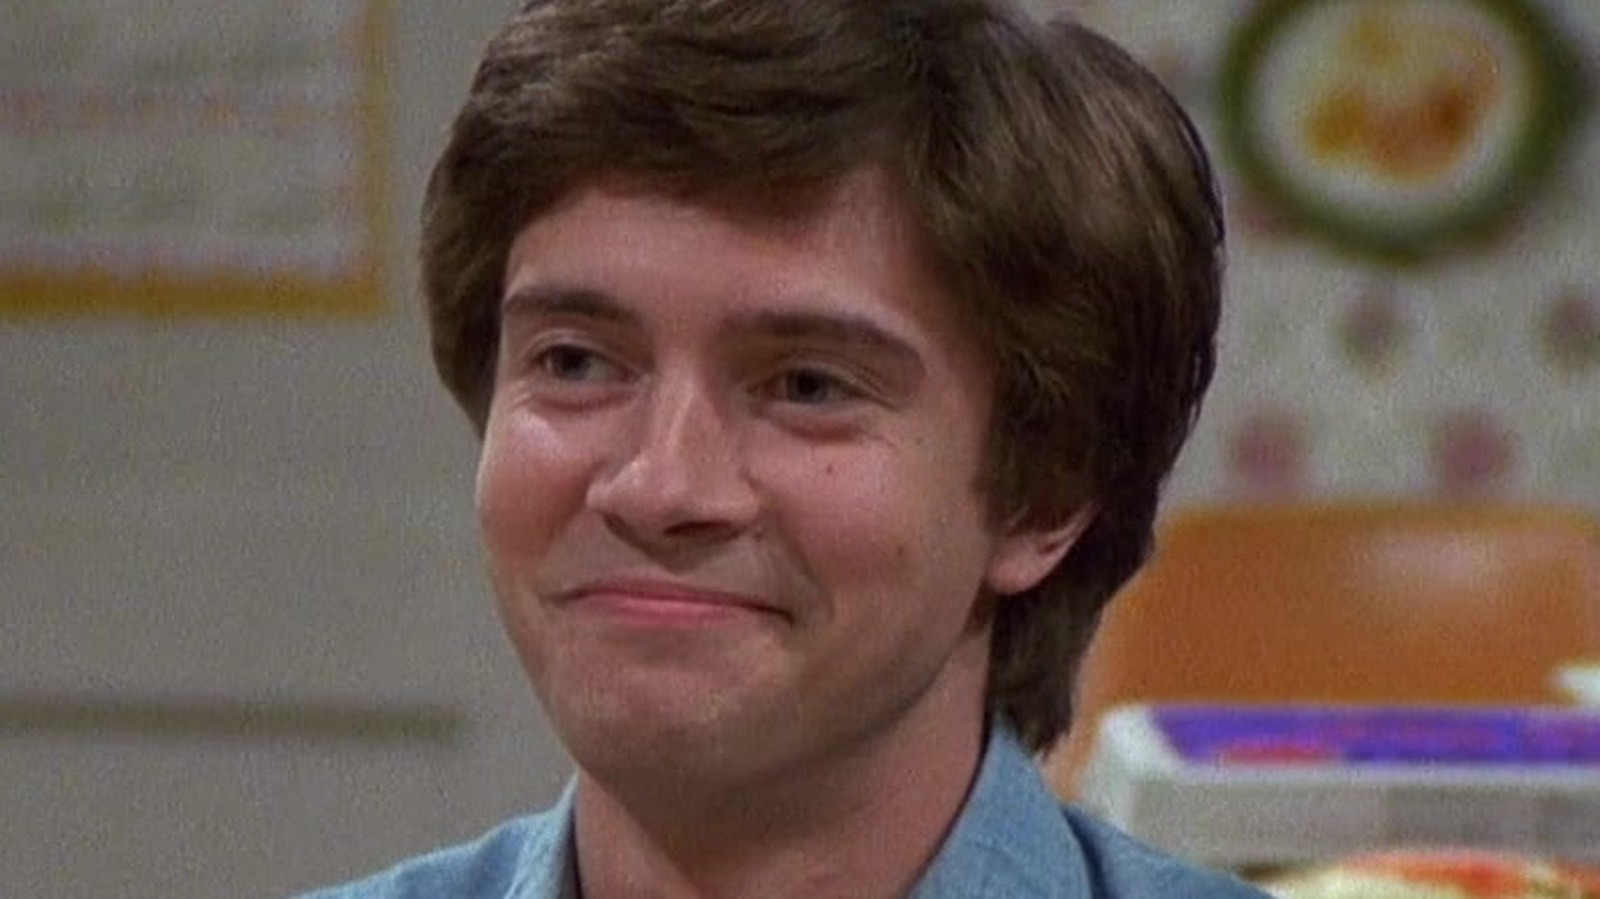 Topher Grace in That 70's Show